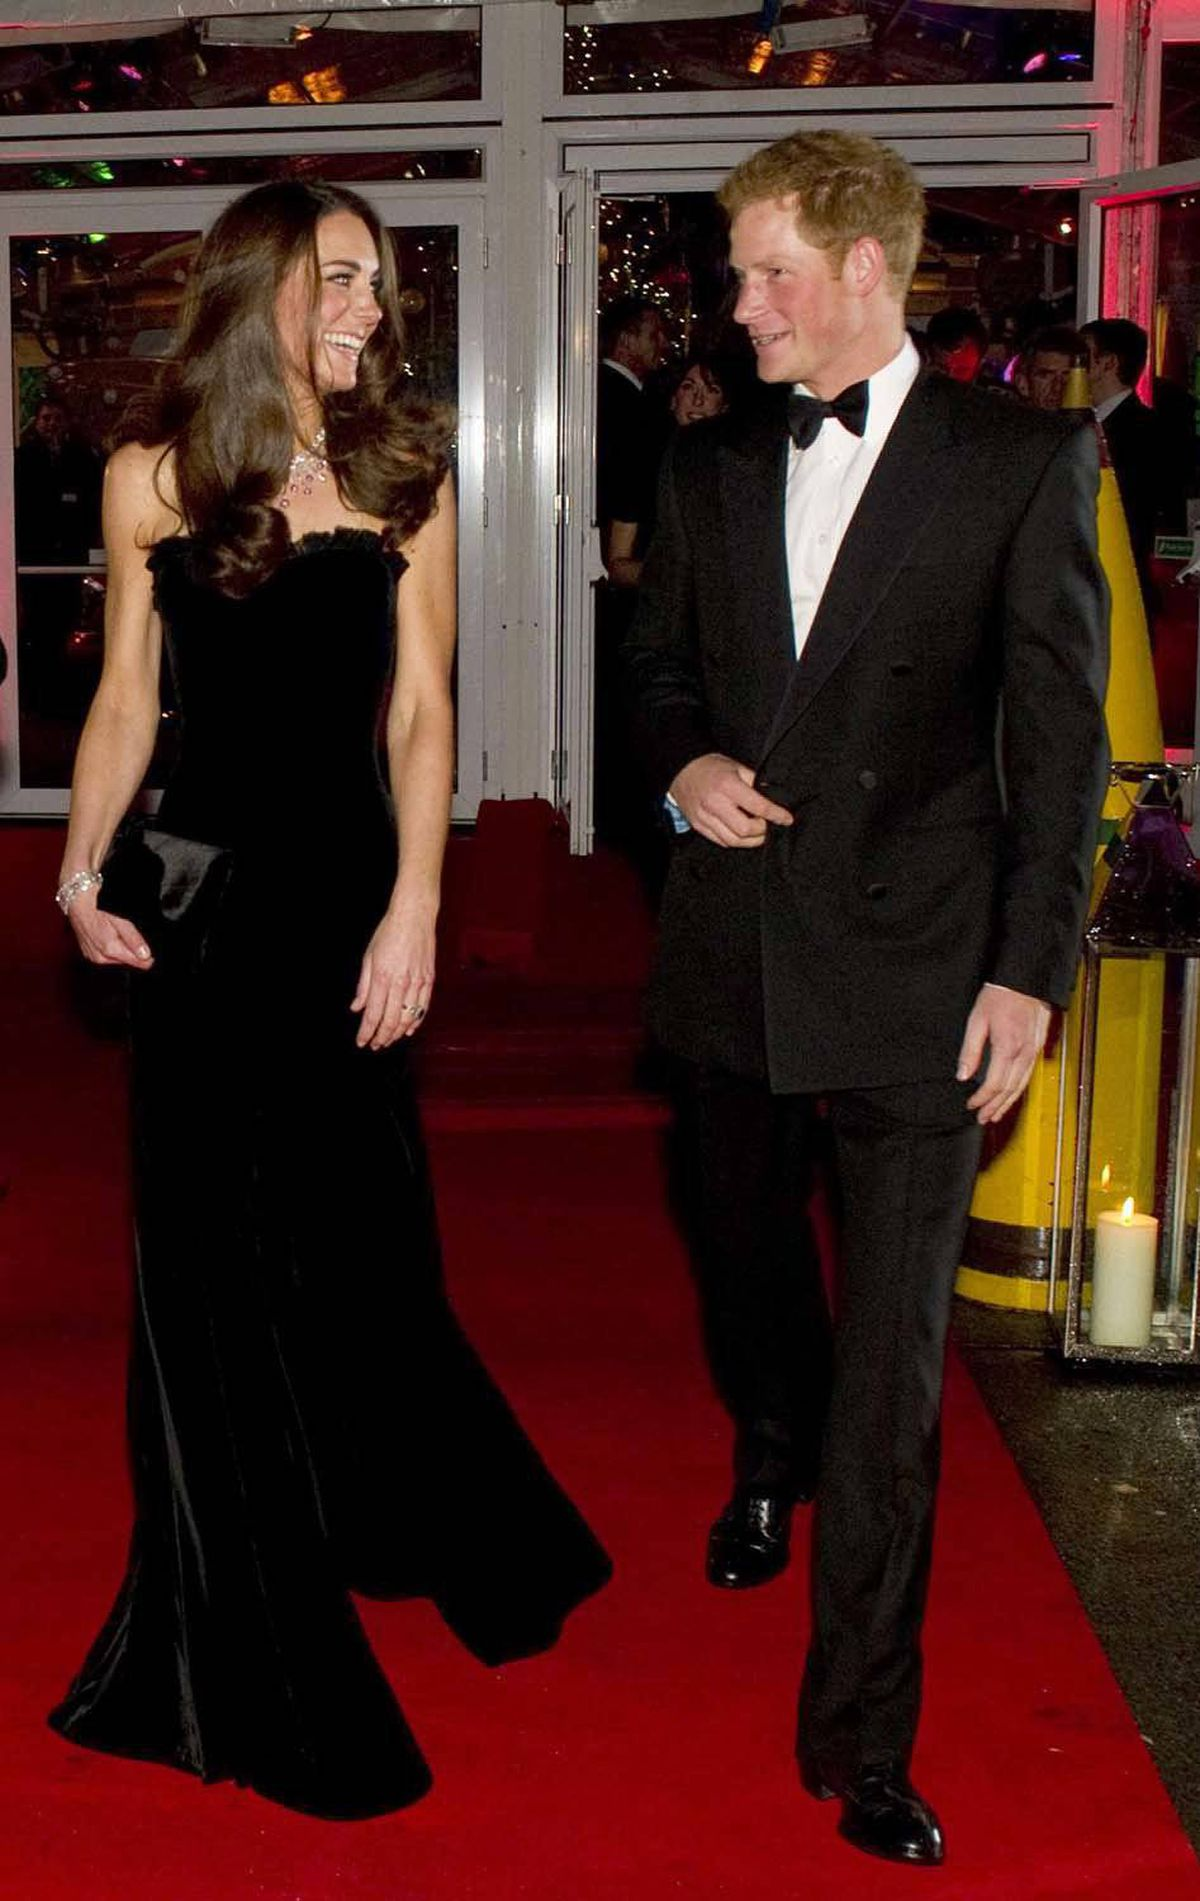 Kate shows off her slim figure in a luxe, velvet gown by Alexander McQueen at A Night of Heroes in London on December 19.